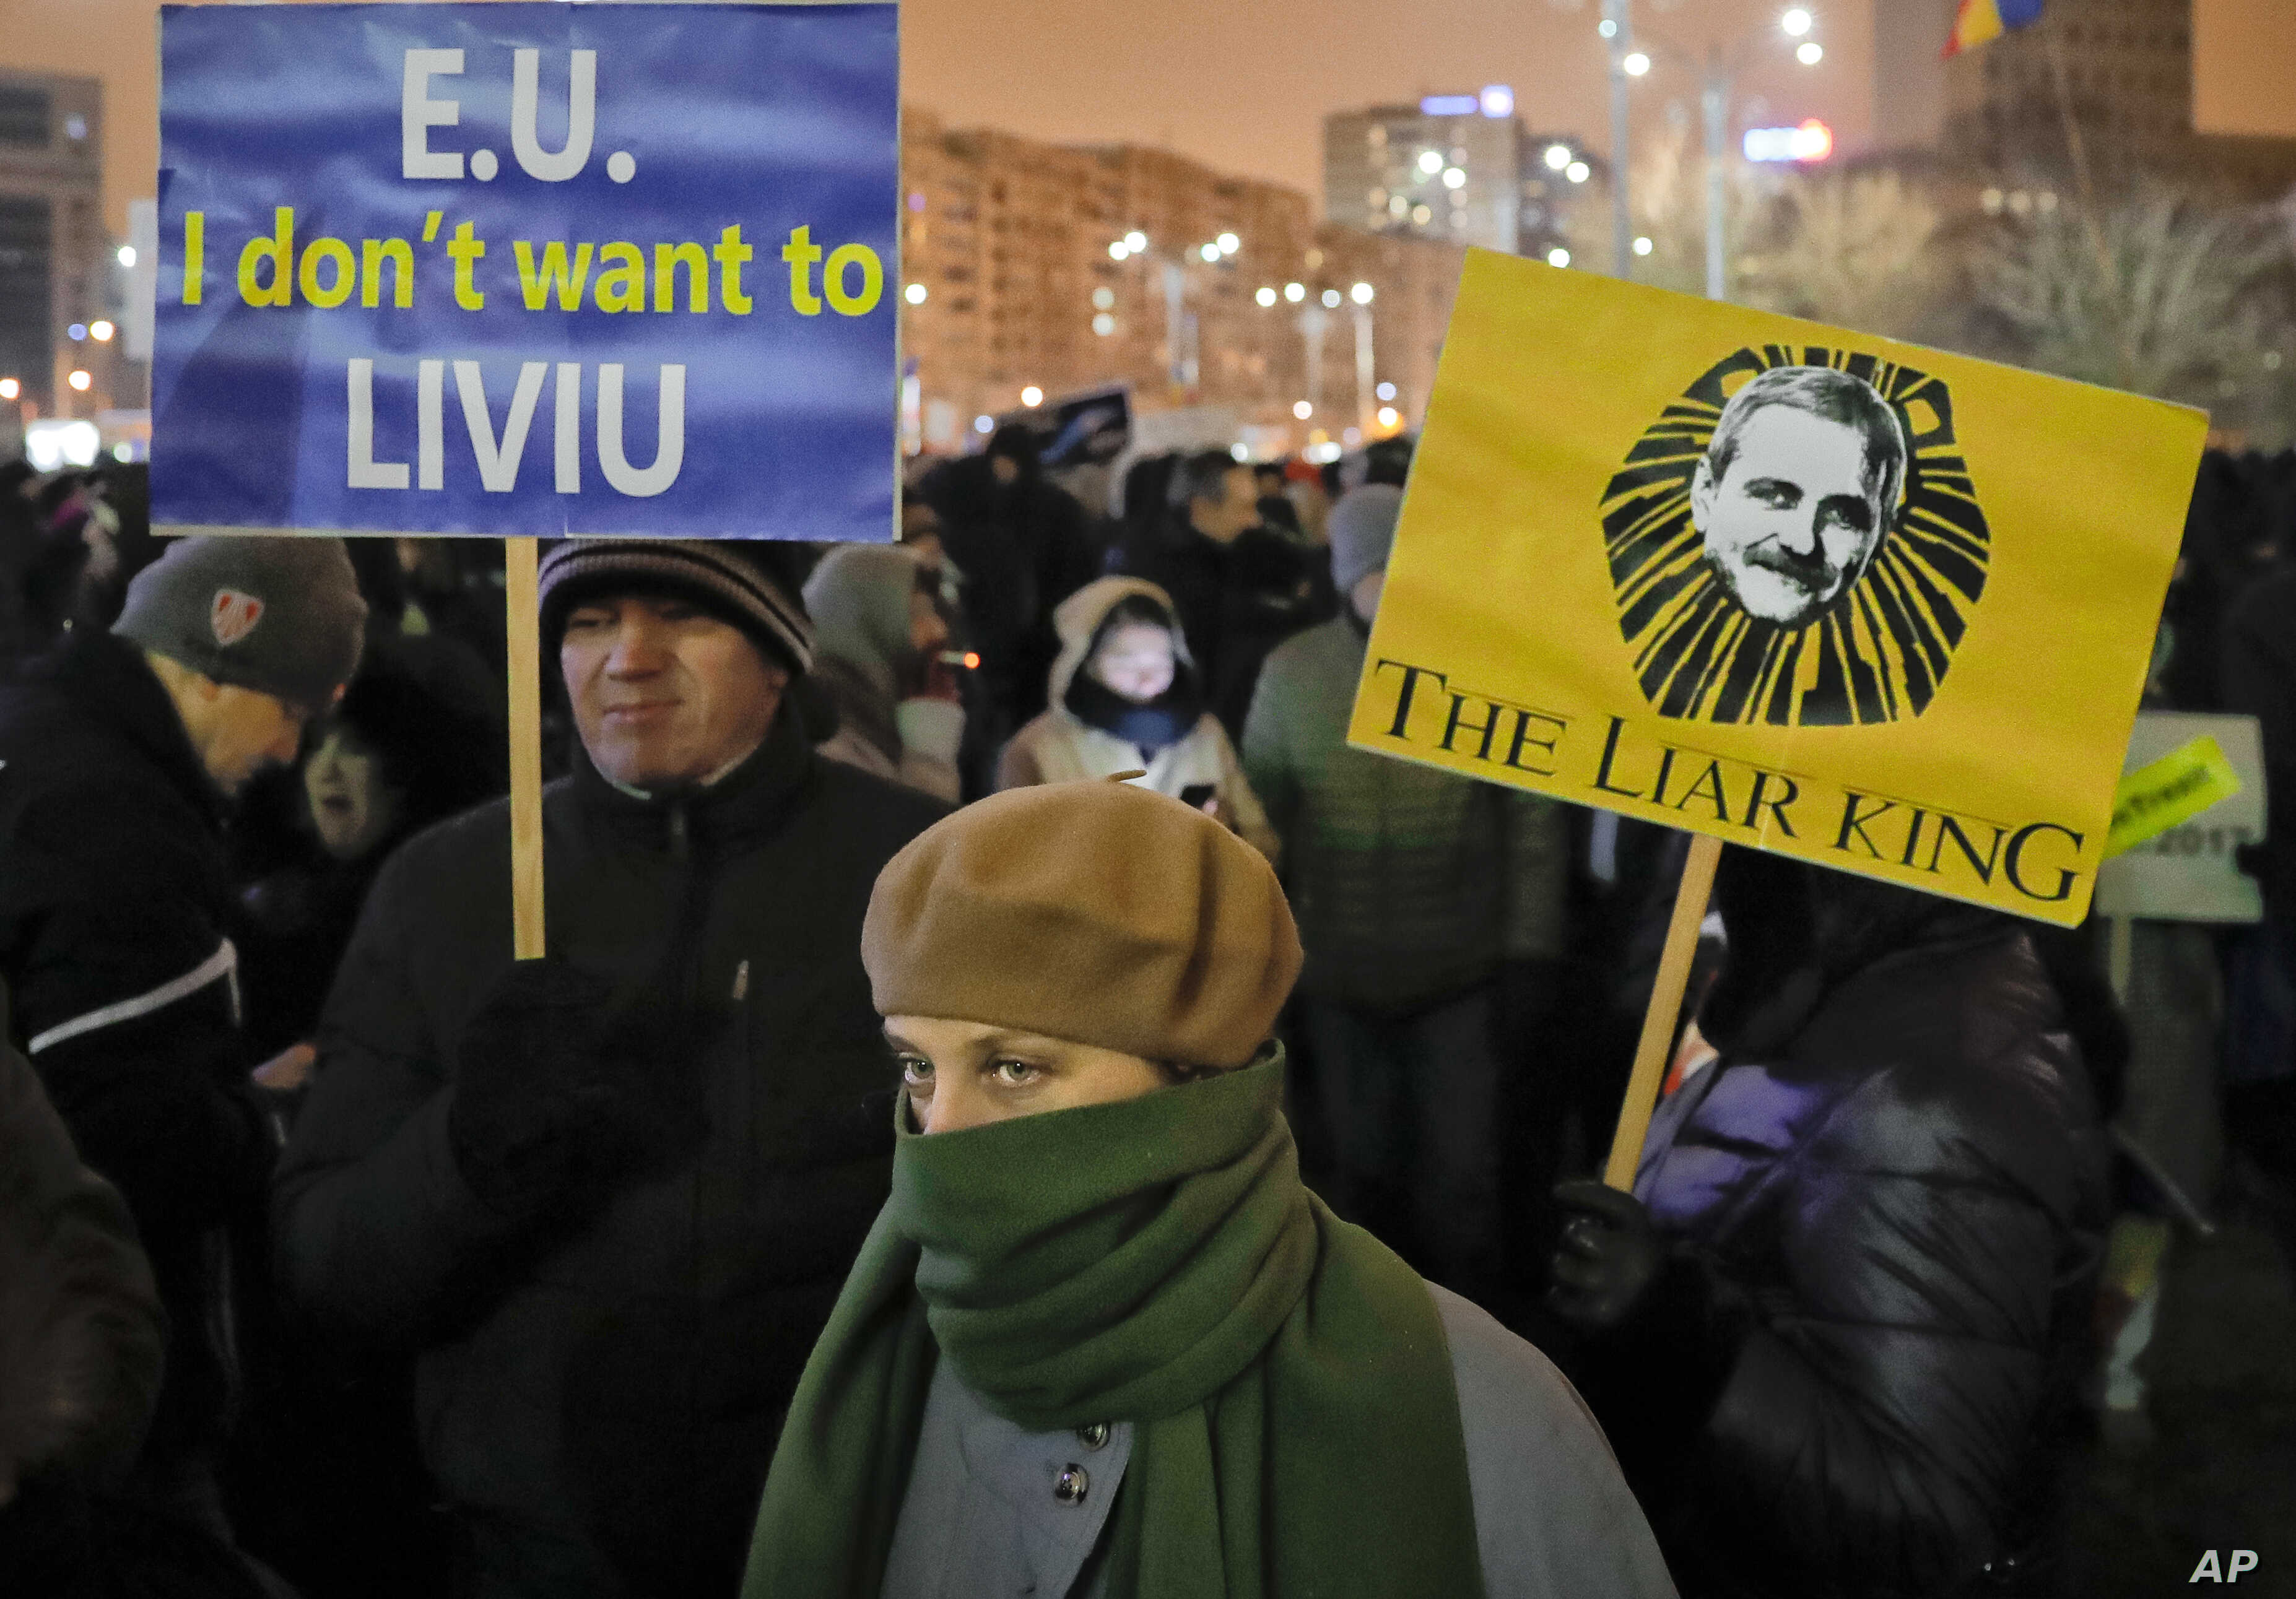 Demonstrators hold banners depicting the head of the ruling Social Democrat party Liviu Dragnea during an anti-government protest in Bucharest, Romania, Feb. 11, 2017.